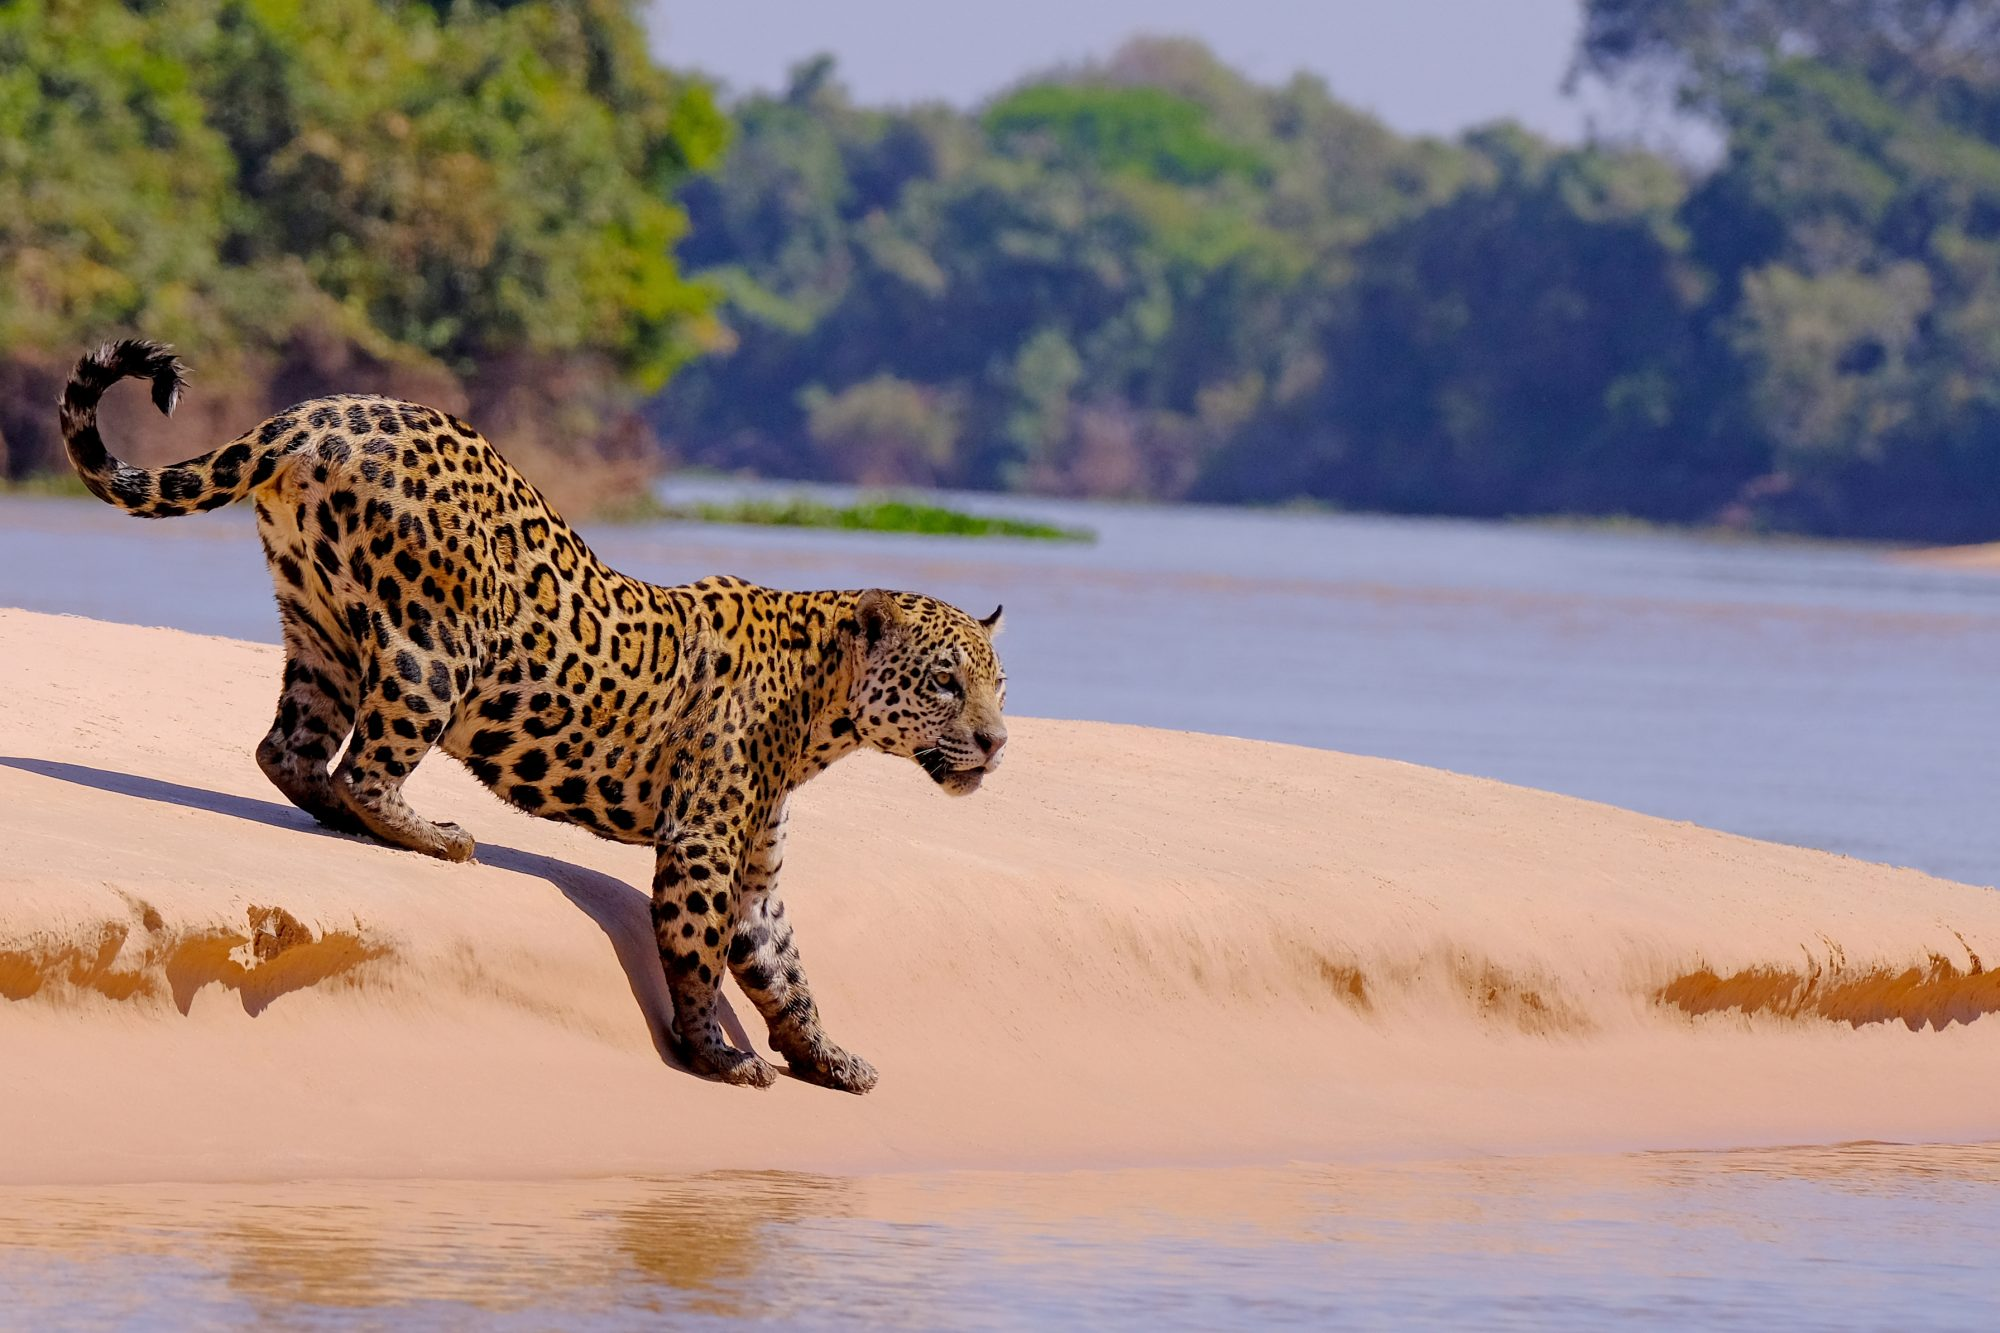 Jaguar on the hunt